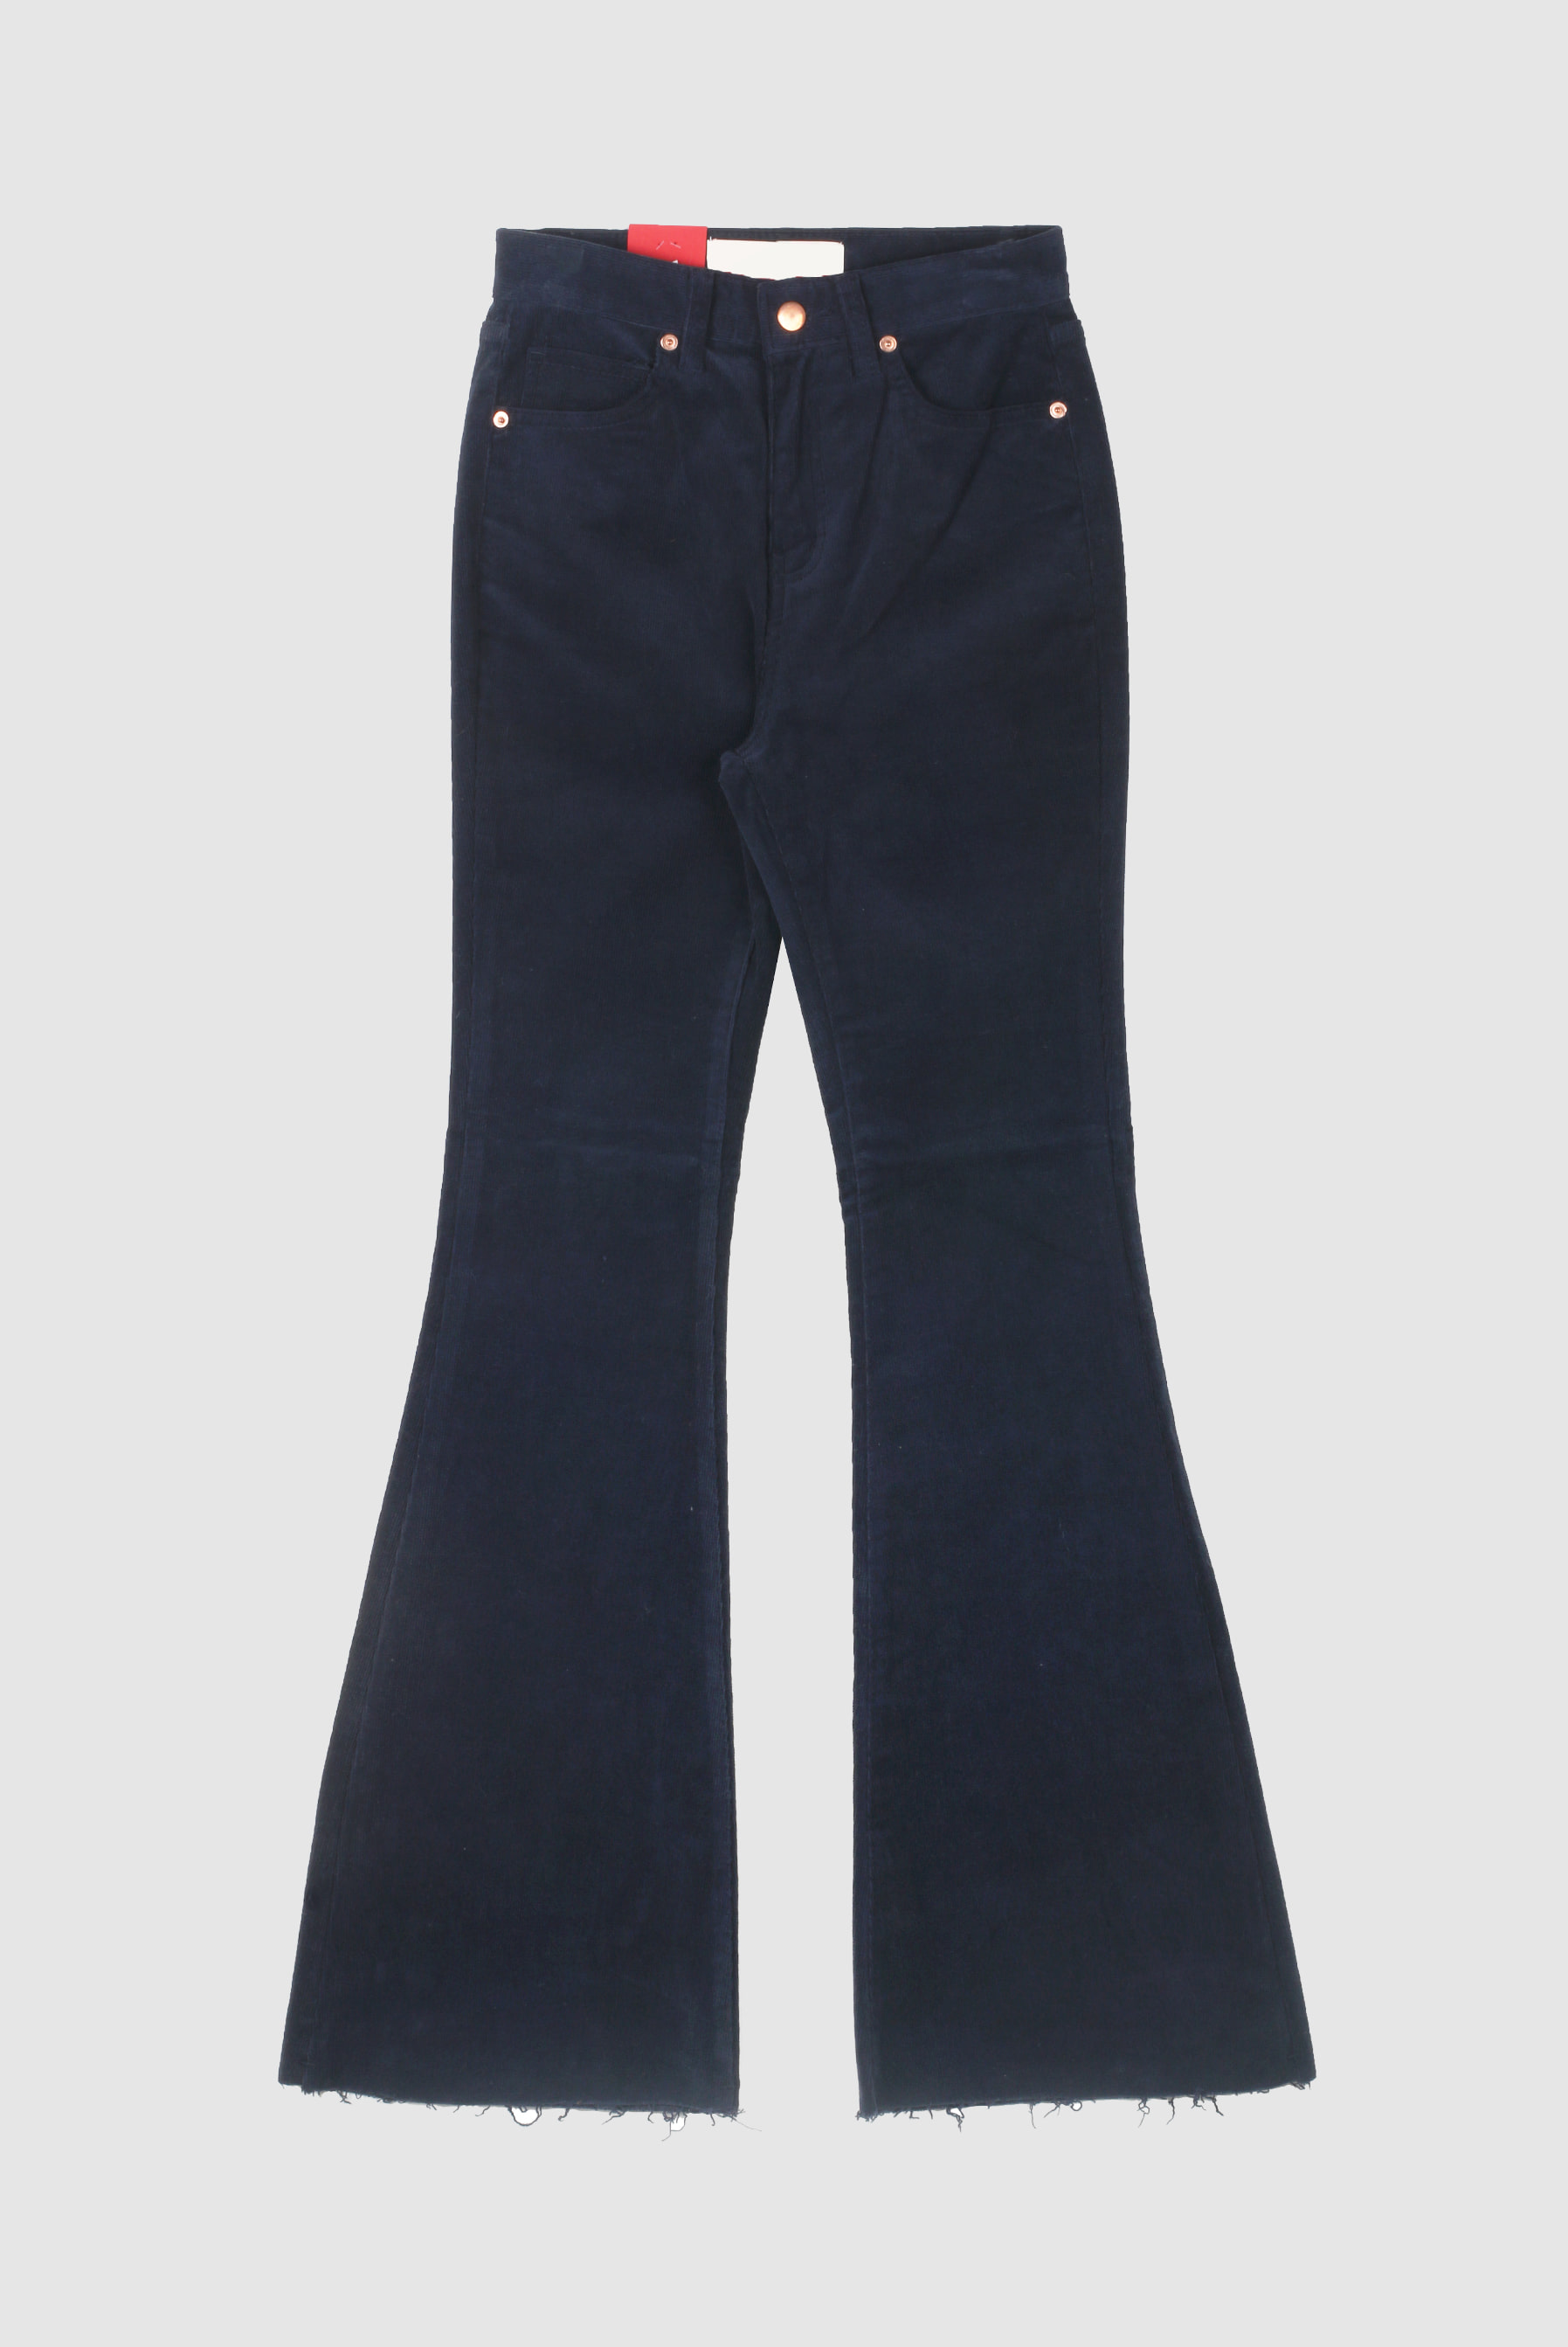 Western Corduroy Boot_Cut Pant